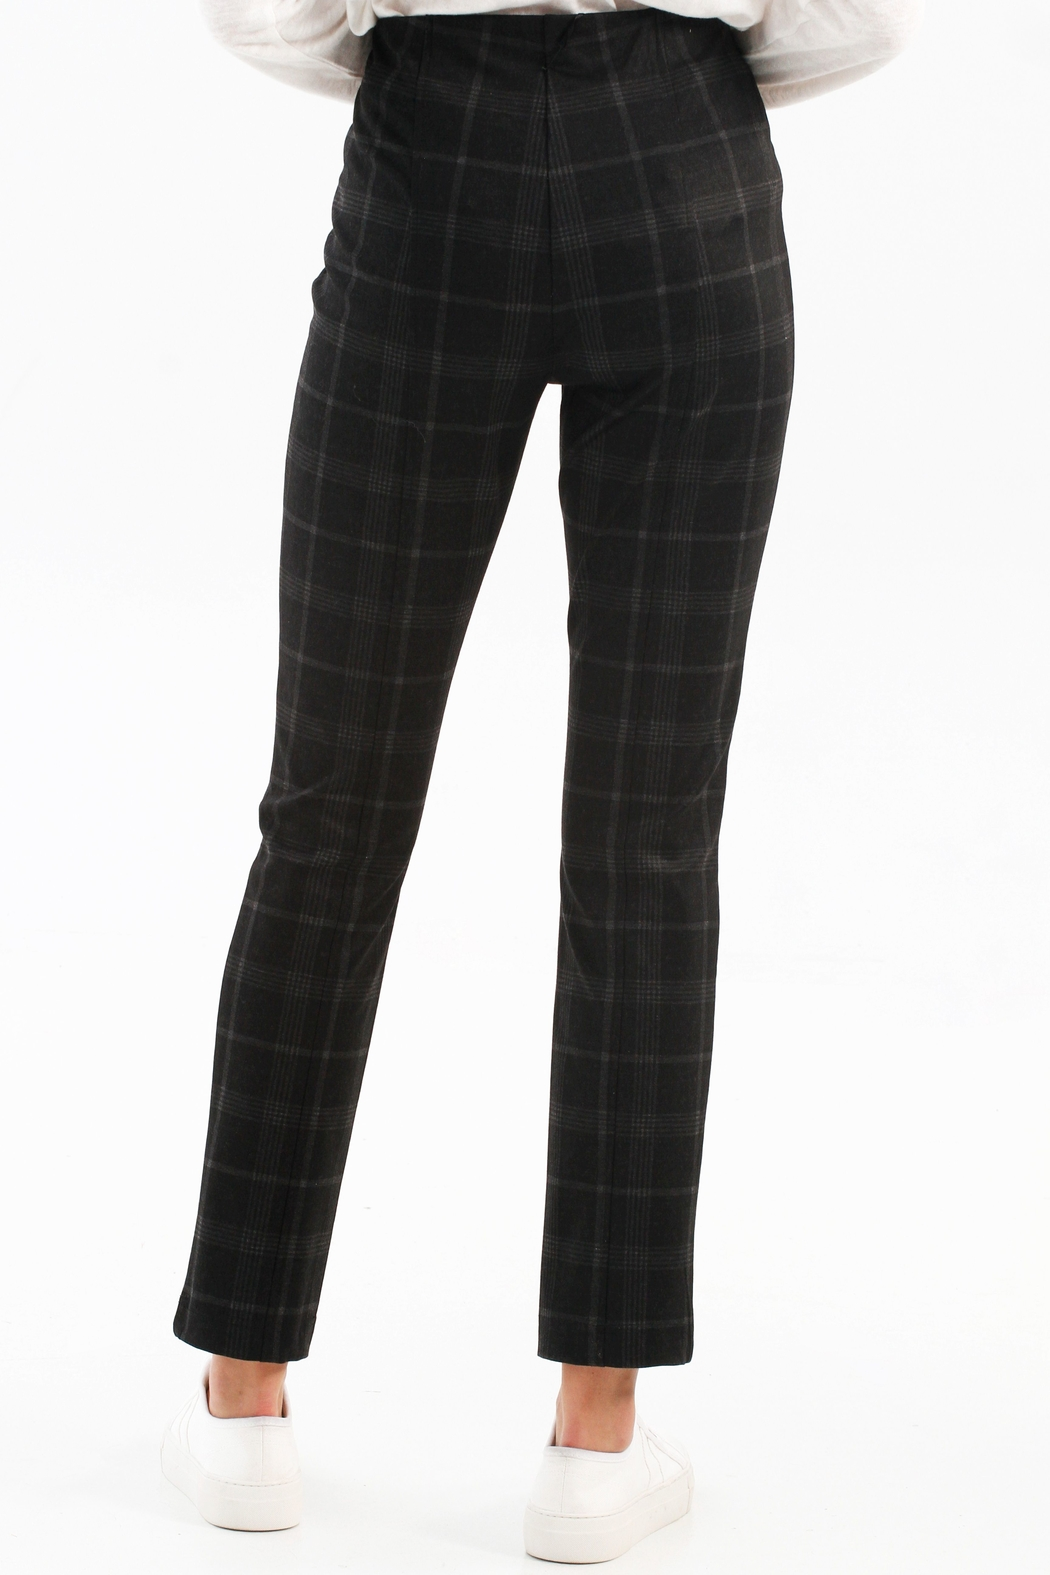 Charlie B. Plaid PDR Pull-On Pant - Front Full Image